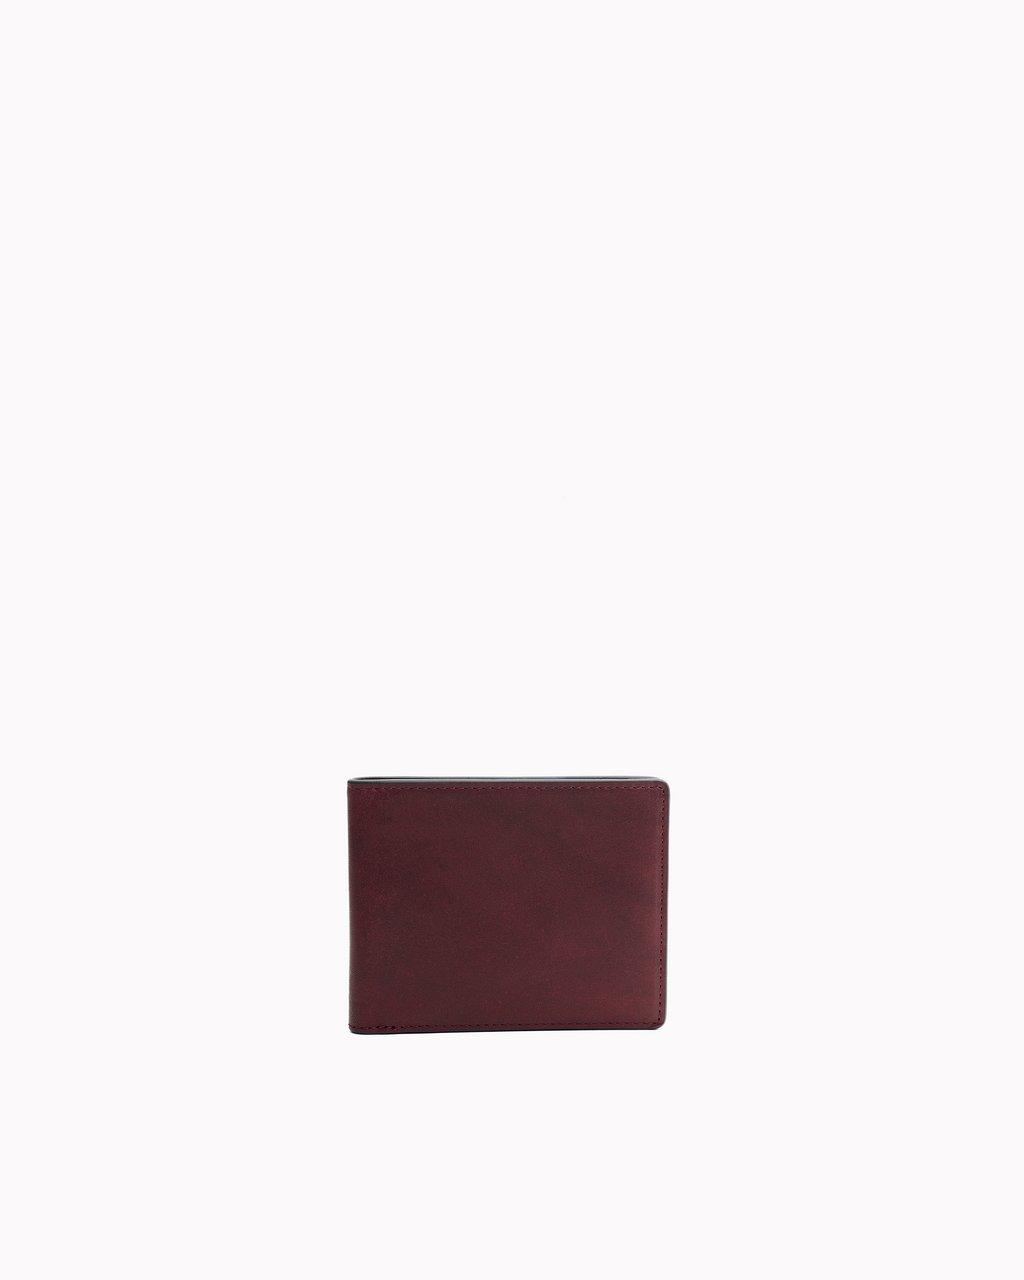 HAMPSHIRE BILLFOLD WALLET